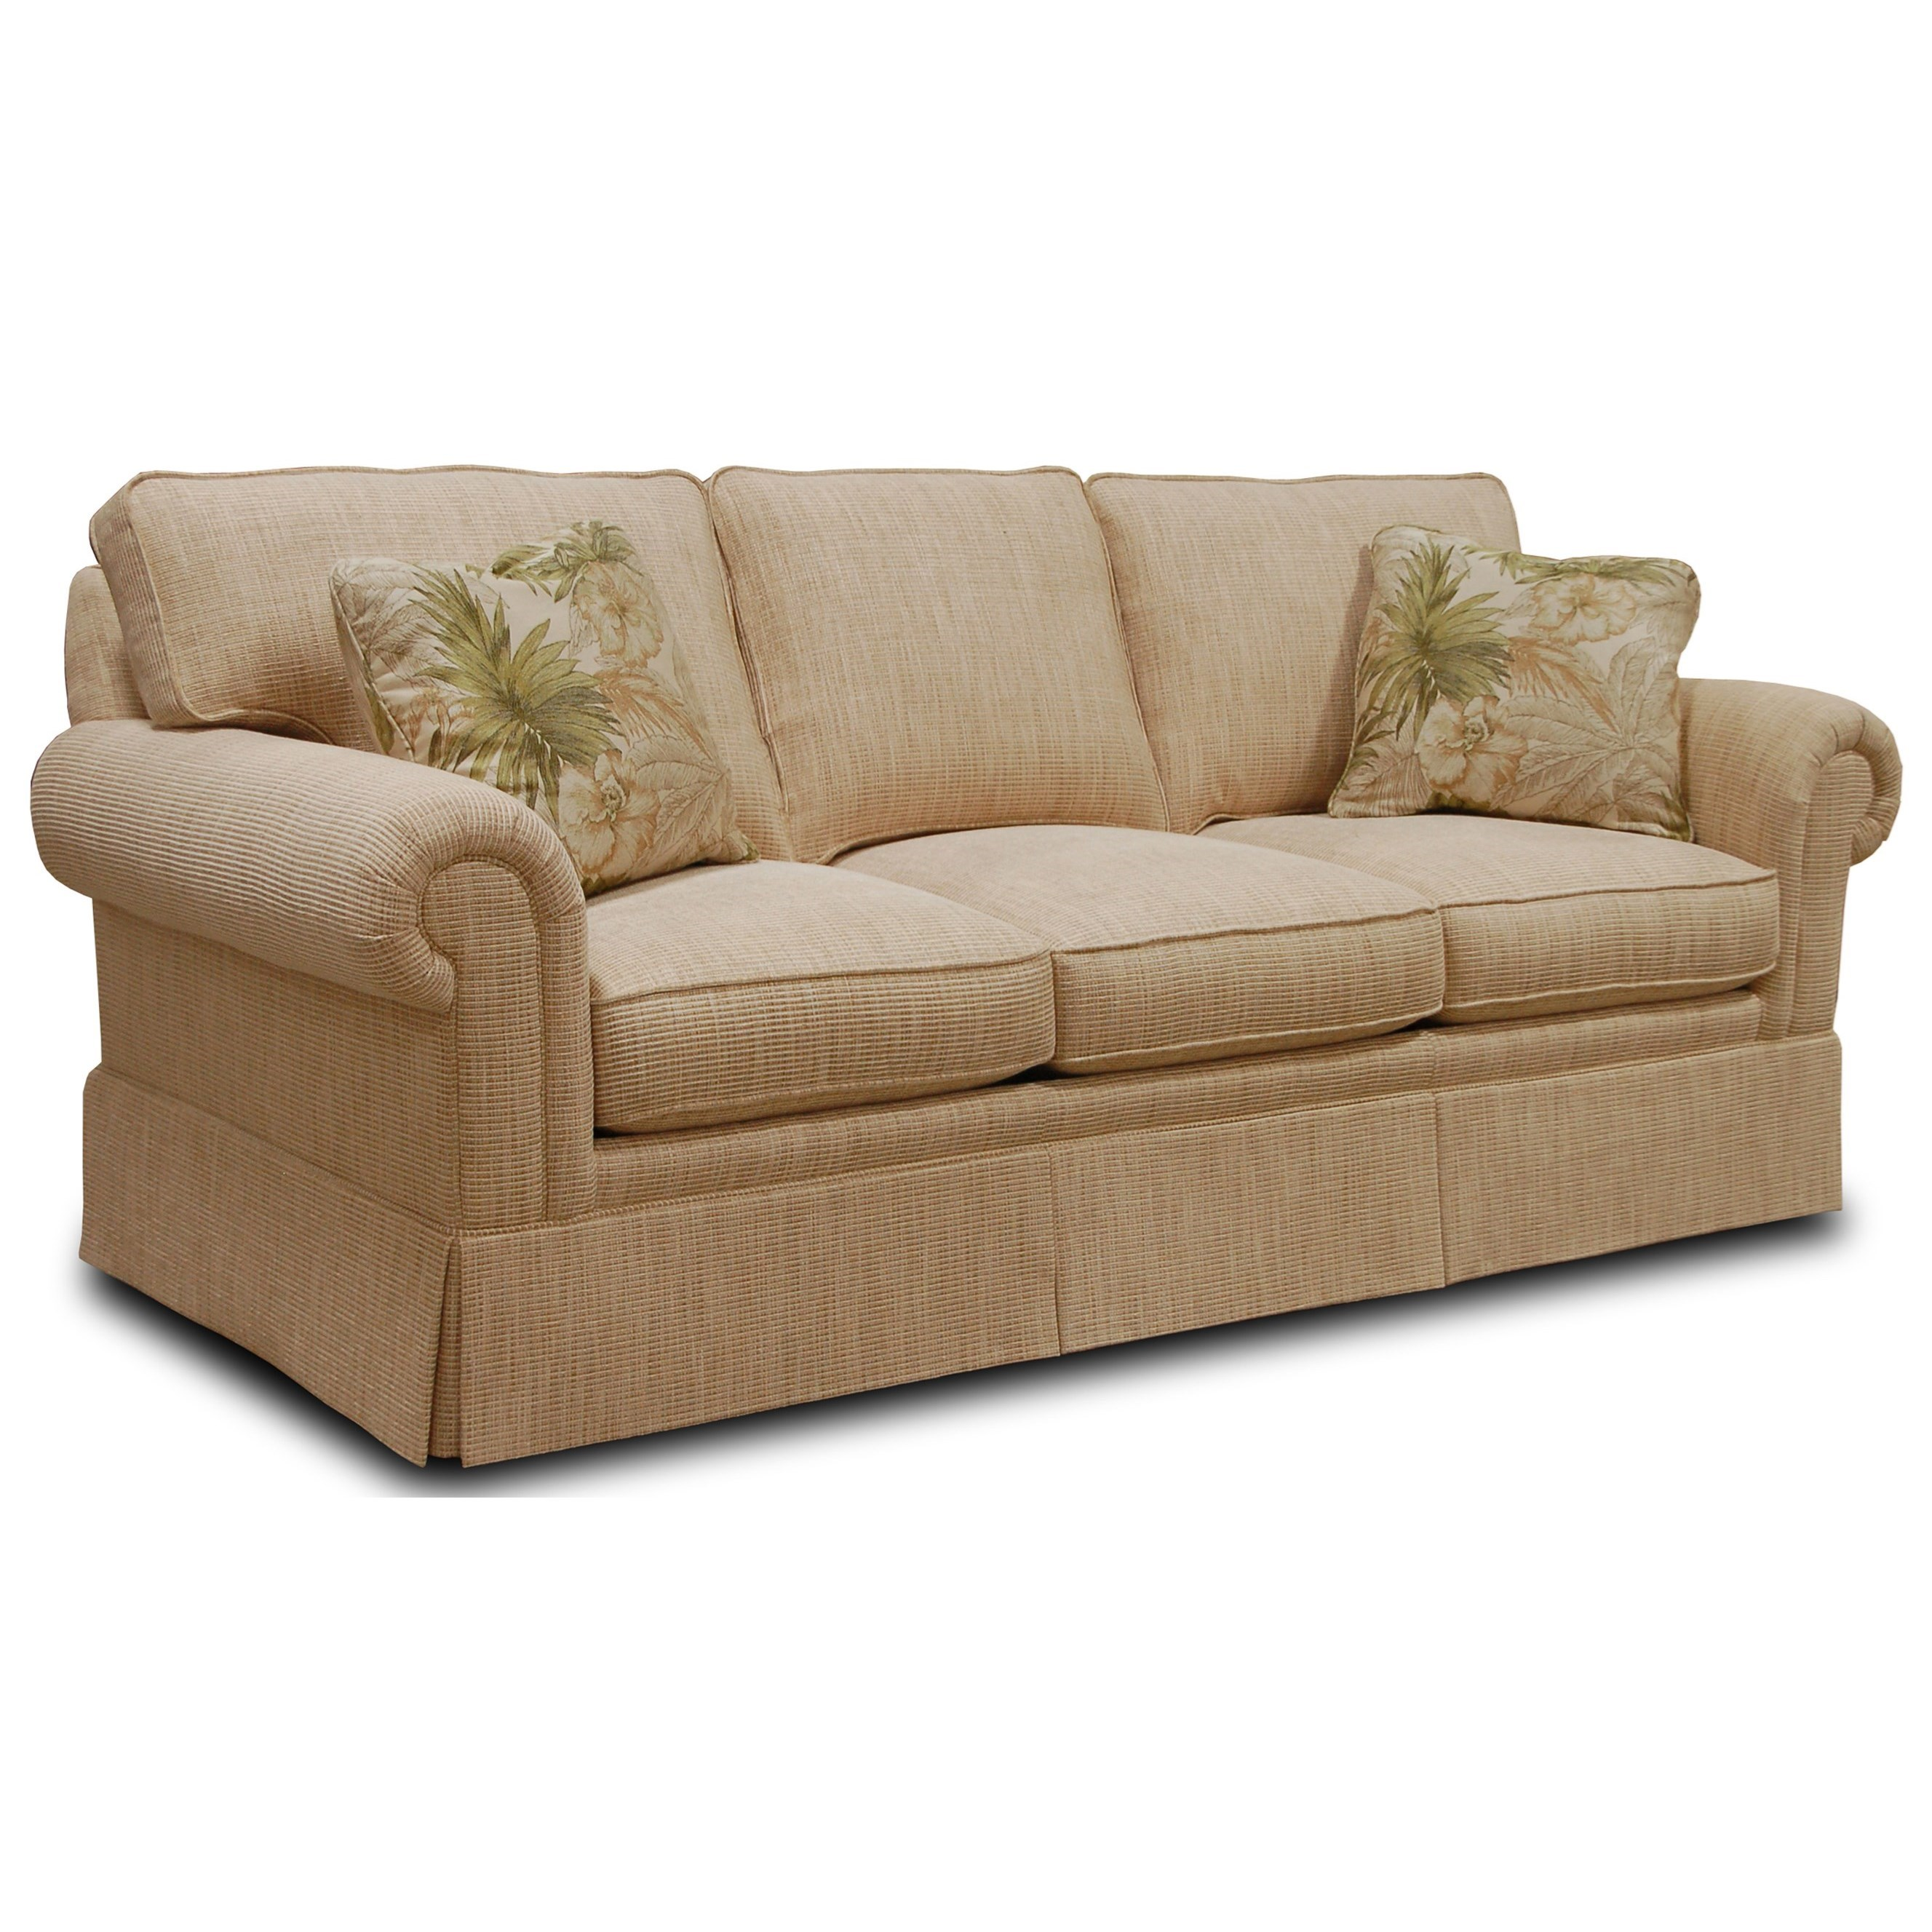 Sofa Sofa Traditional Sofa With Loose Cushion Back And Round Panel Arms By Sherrill At Baer S Furniture